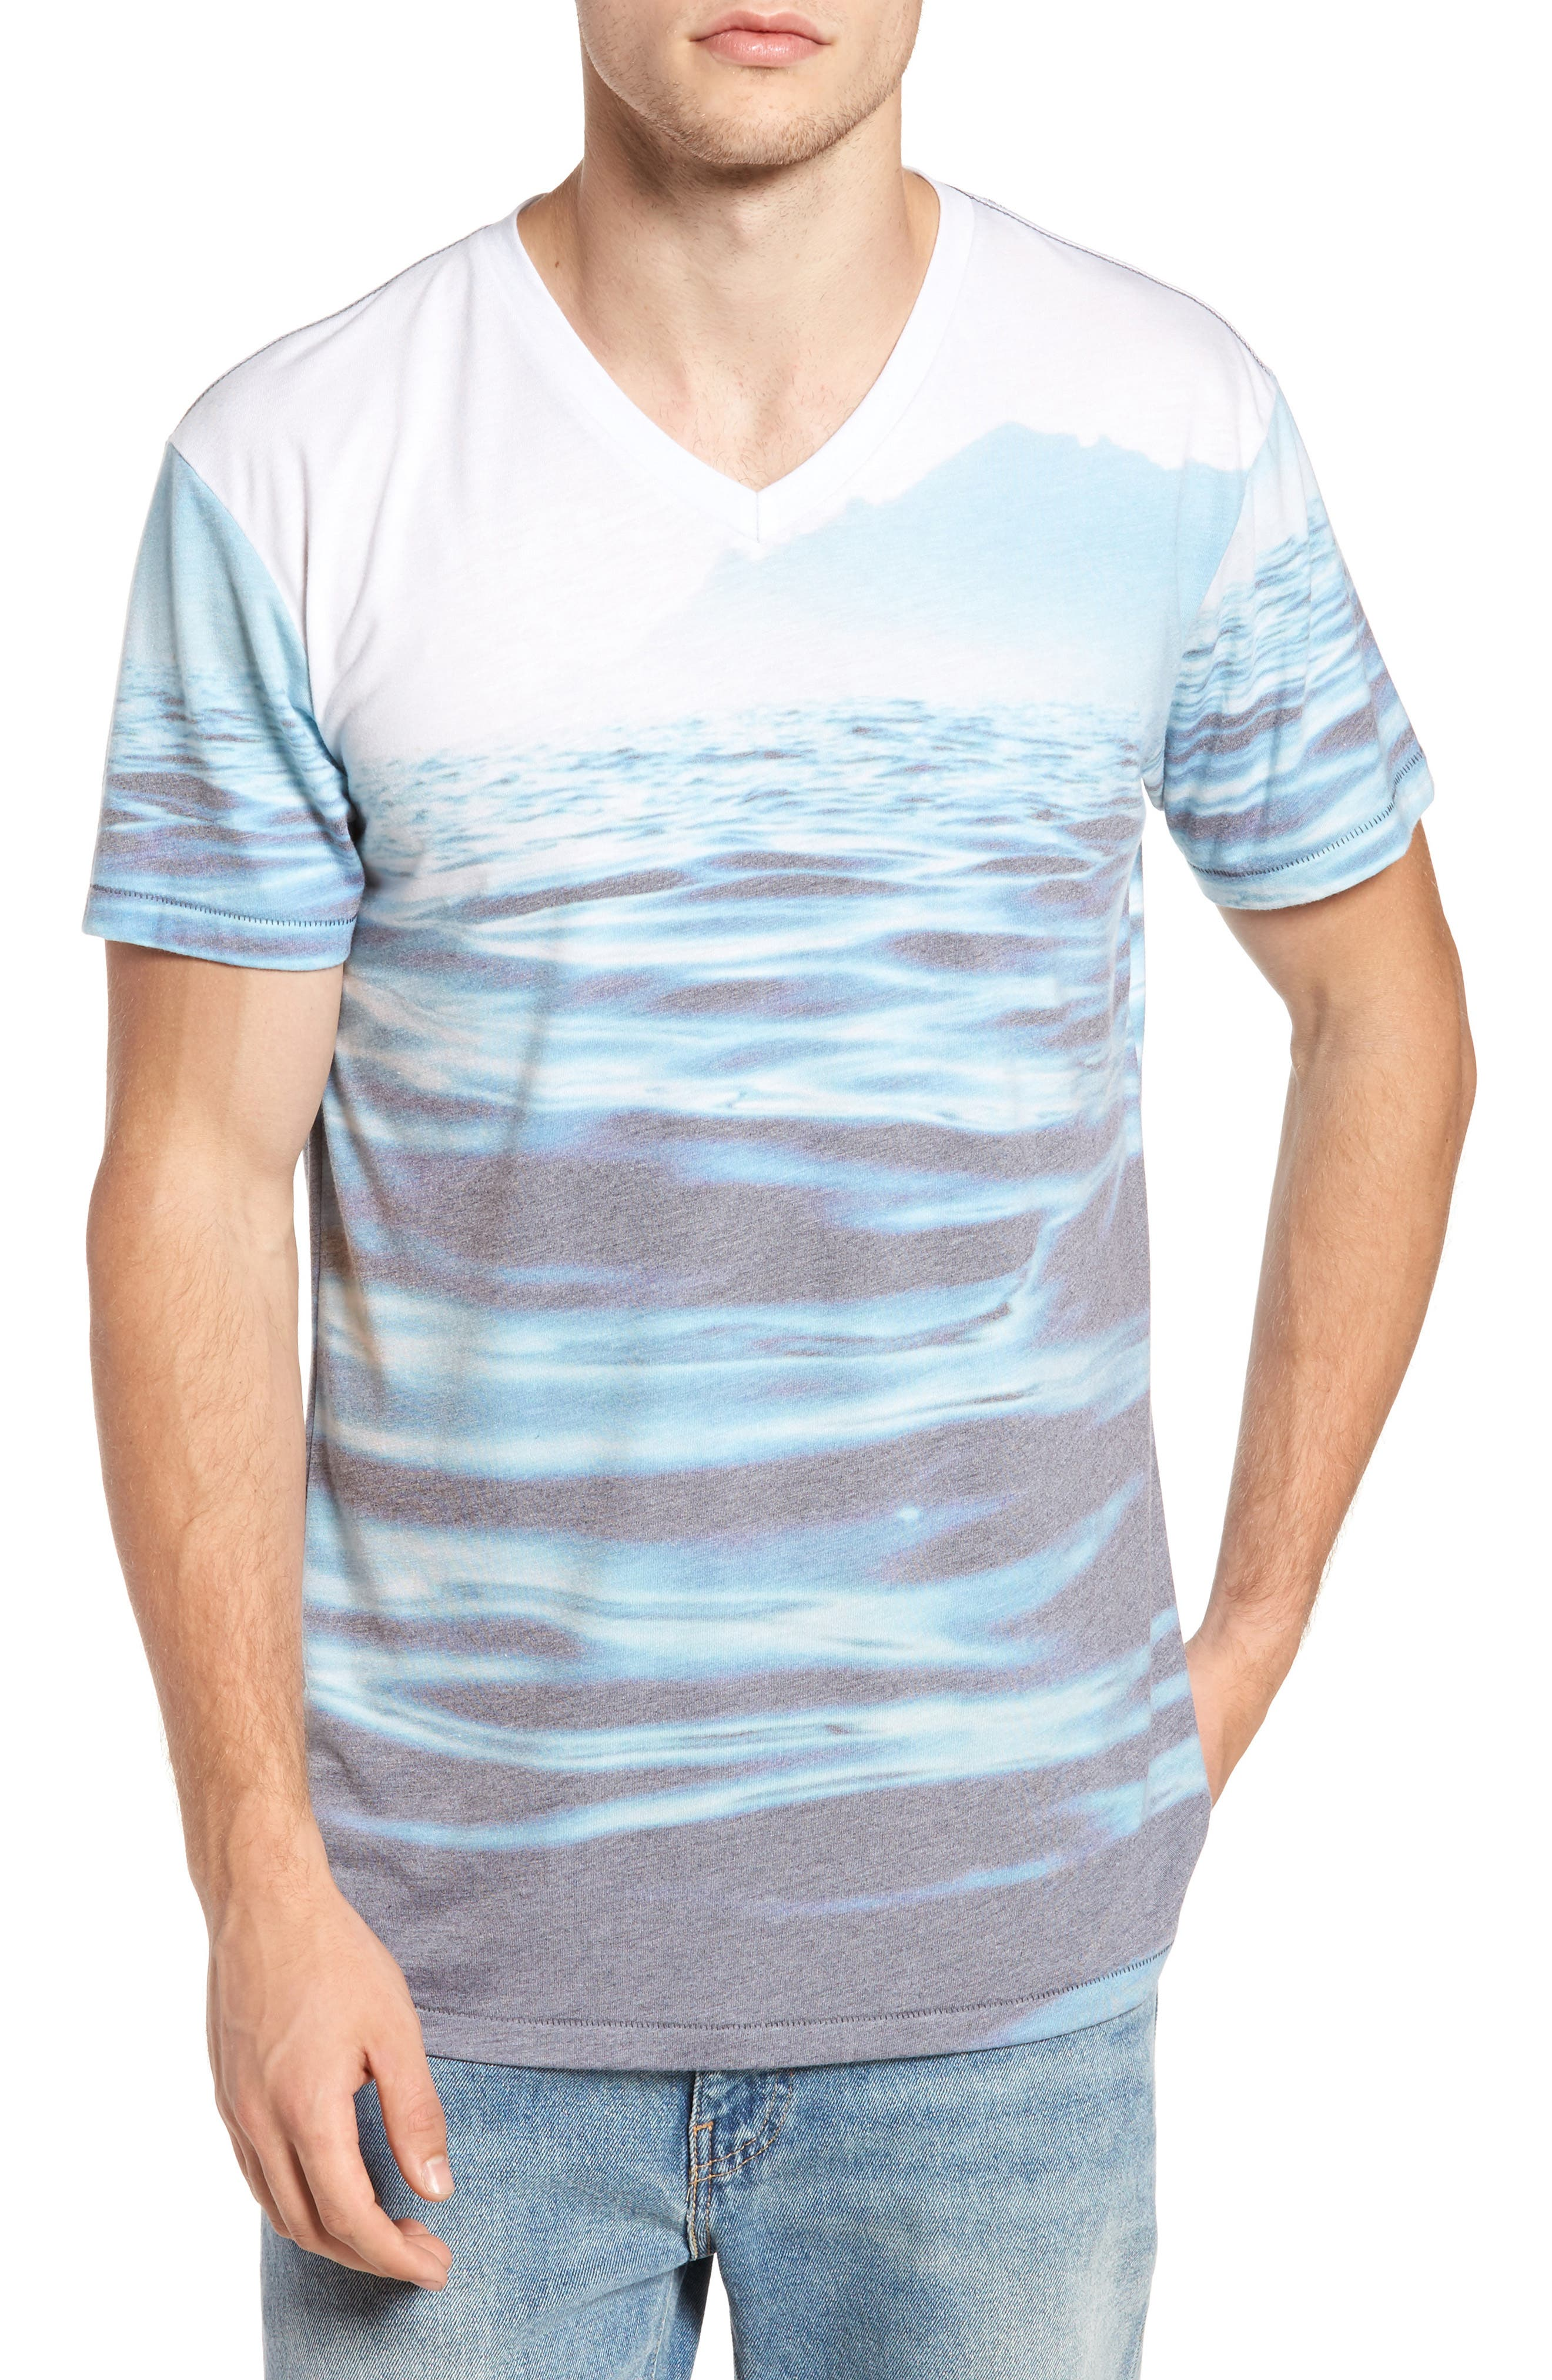 Mirage Waters T-Shirt,                         Main,                         color,